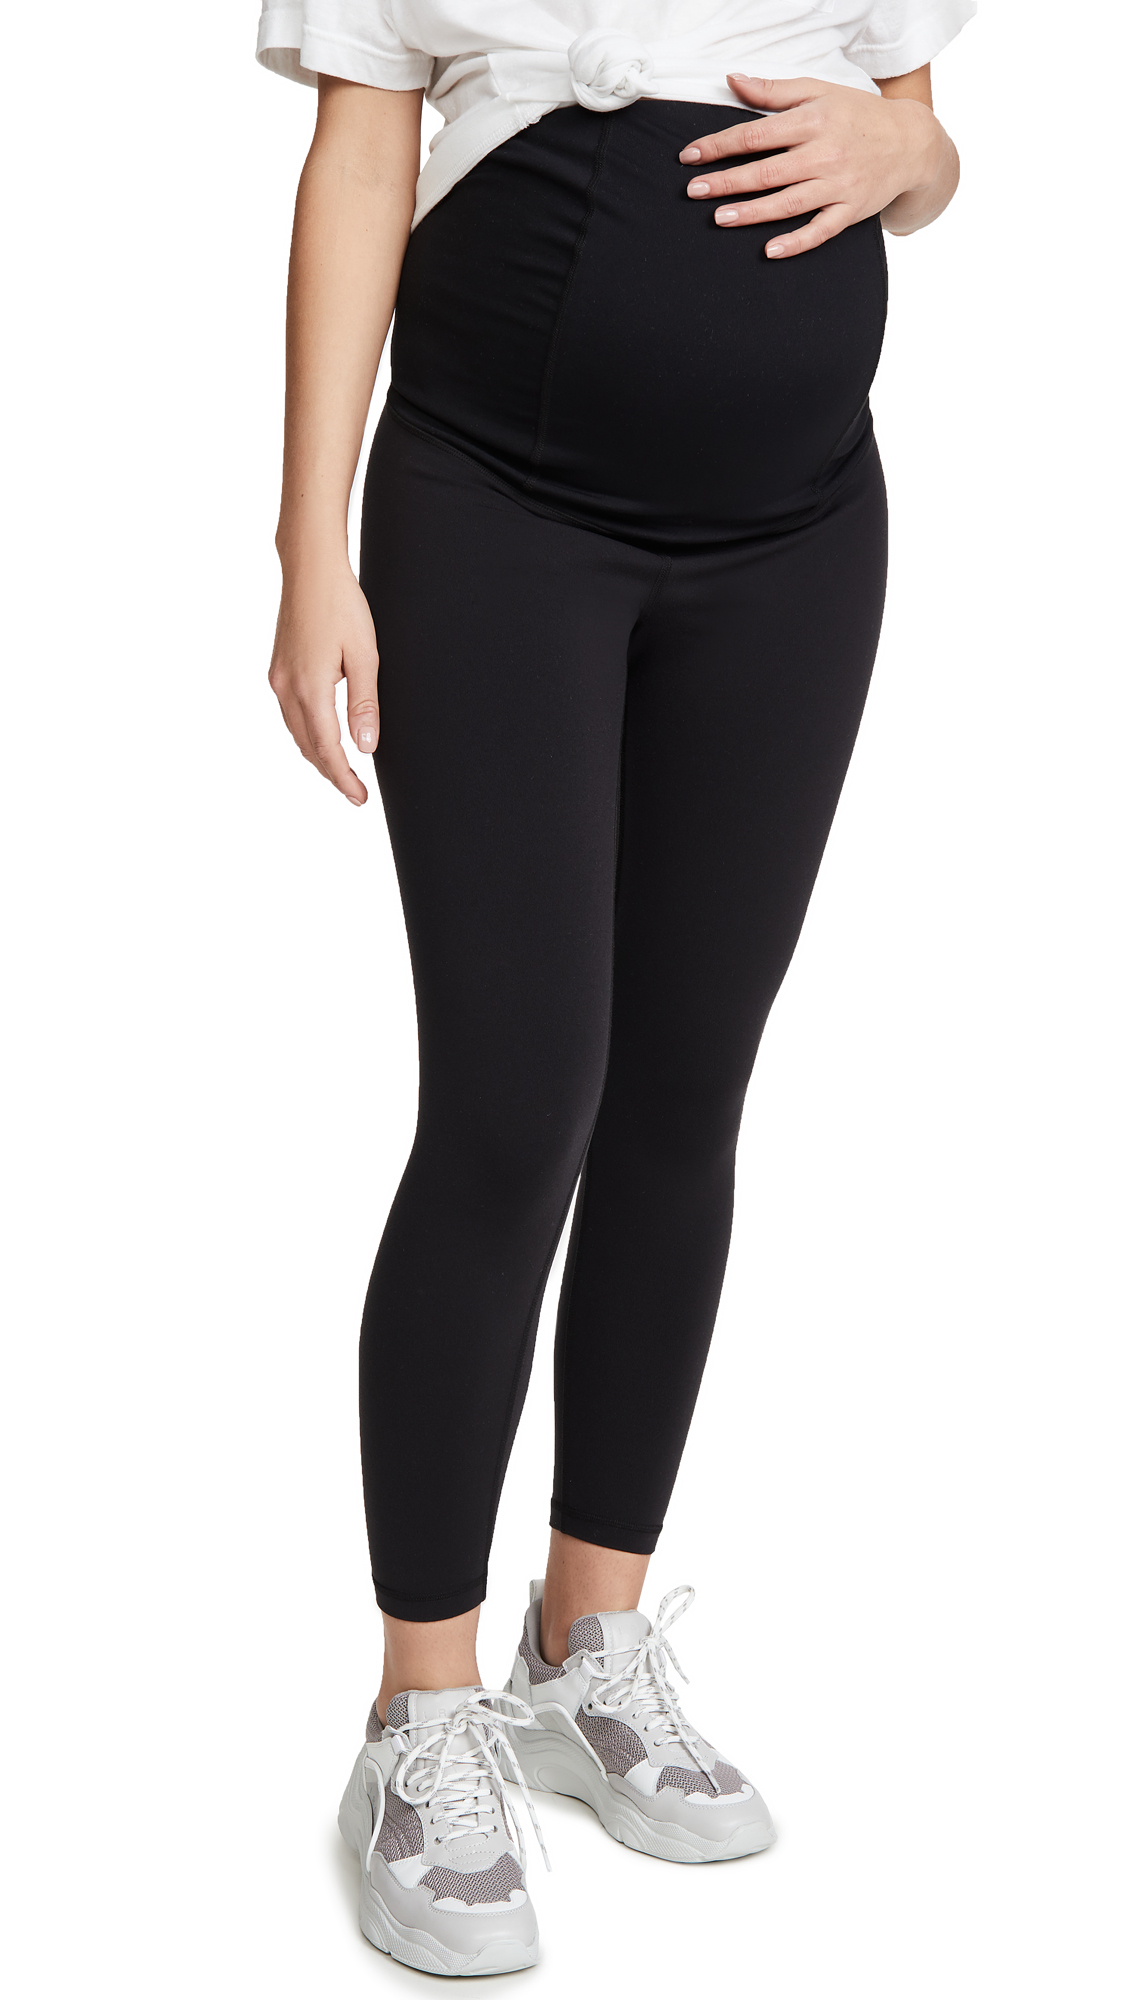 Ingrid & Isabel 7/8 Active Maternity Leggings